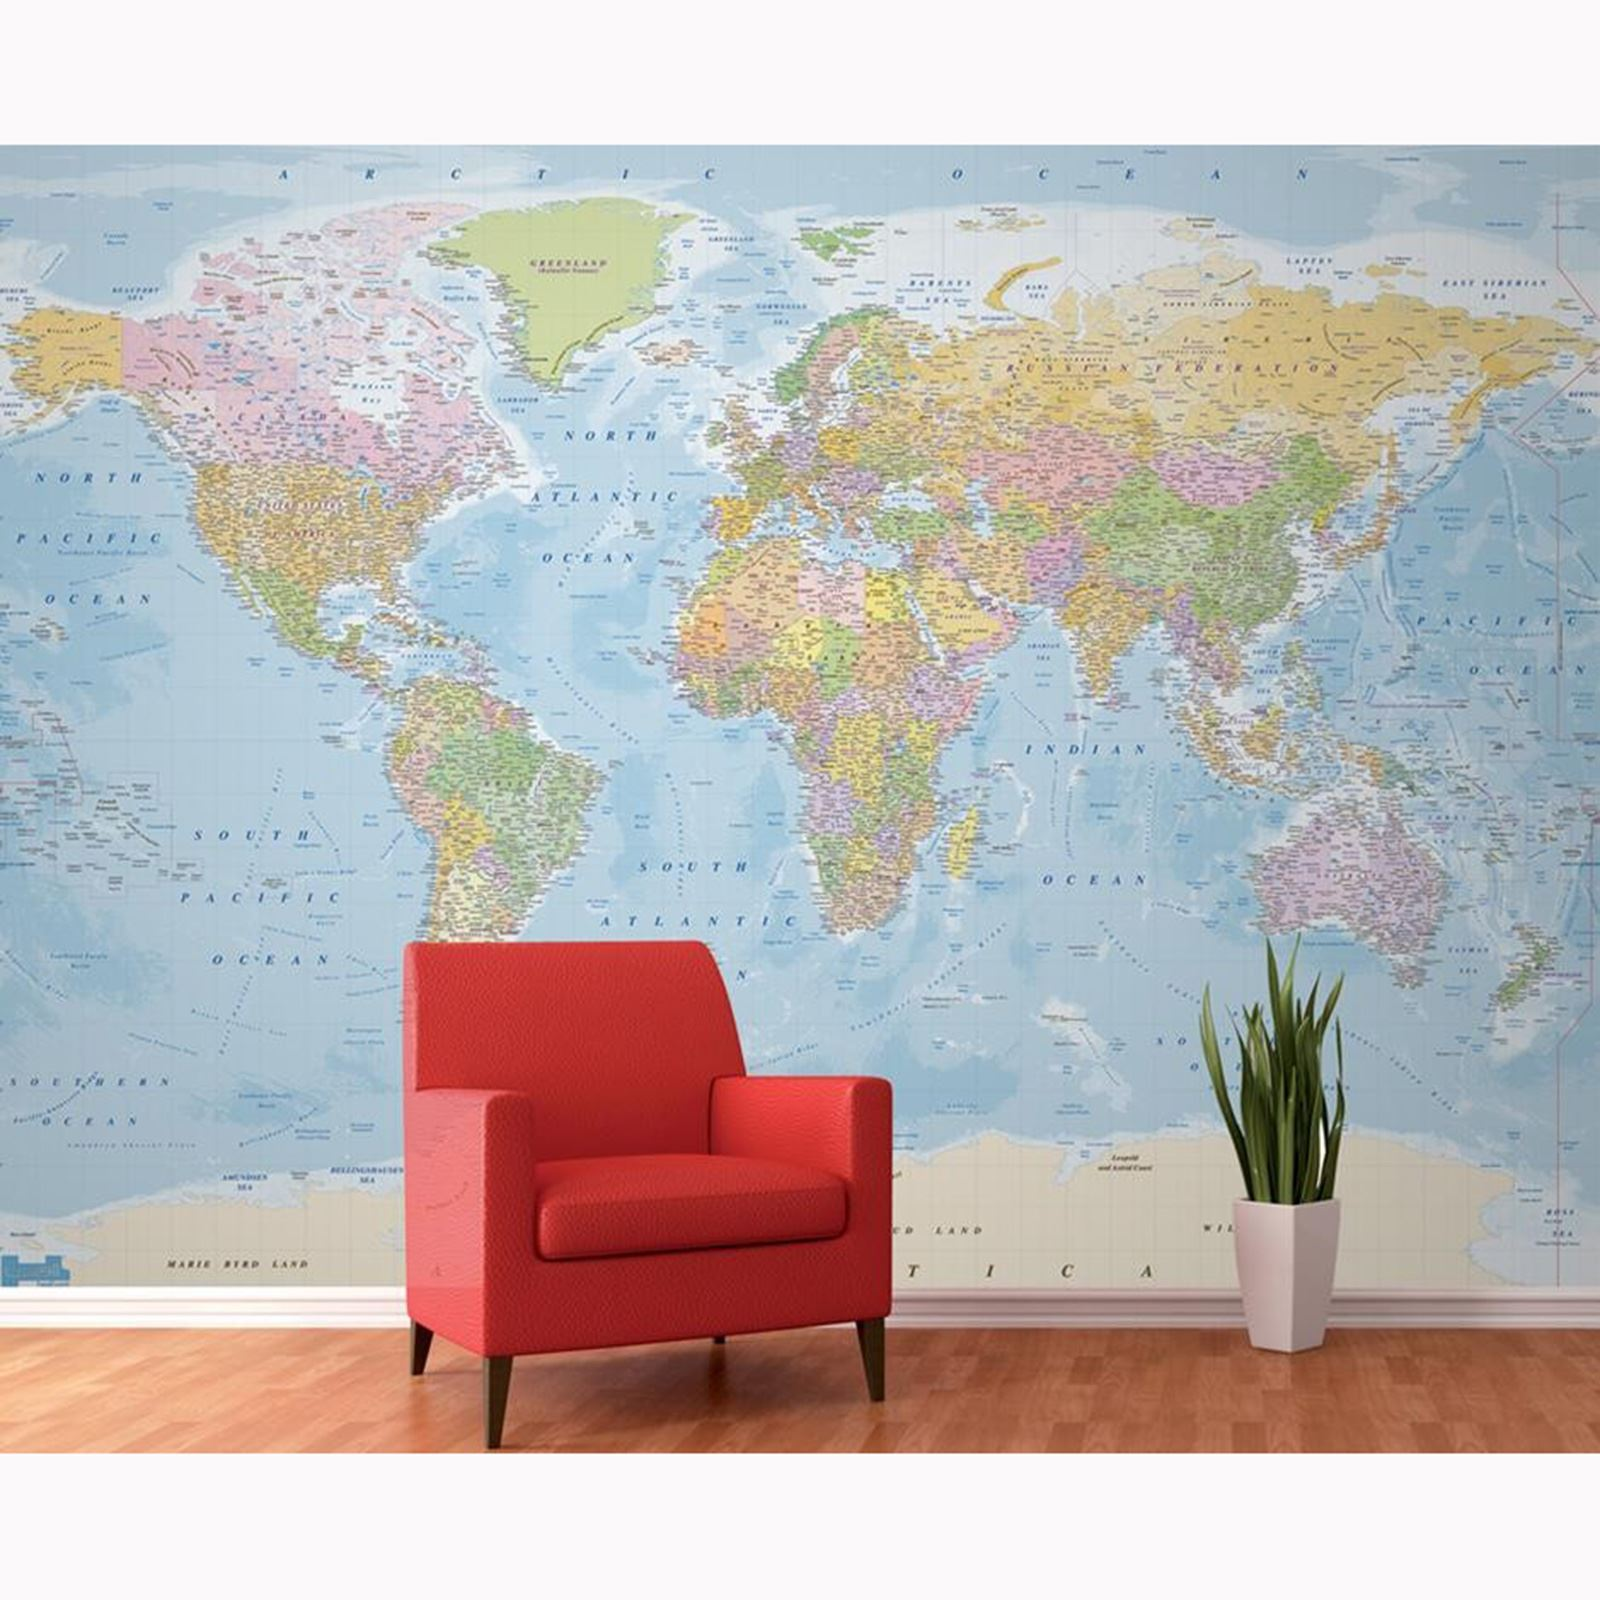 World map wall murals 4 designs available feature wall office world map wall murals 4 designs available feature amipublicfo Gallery